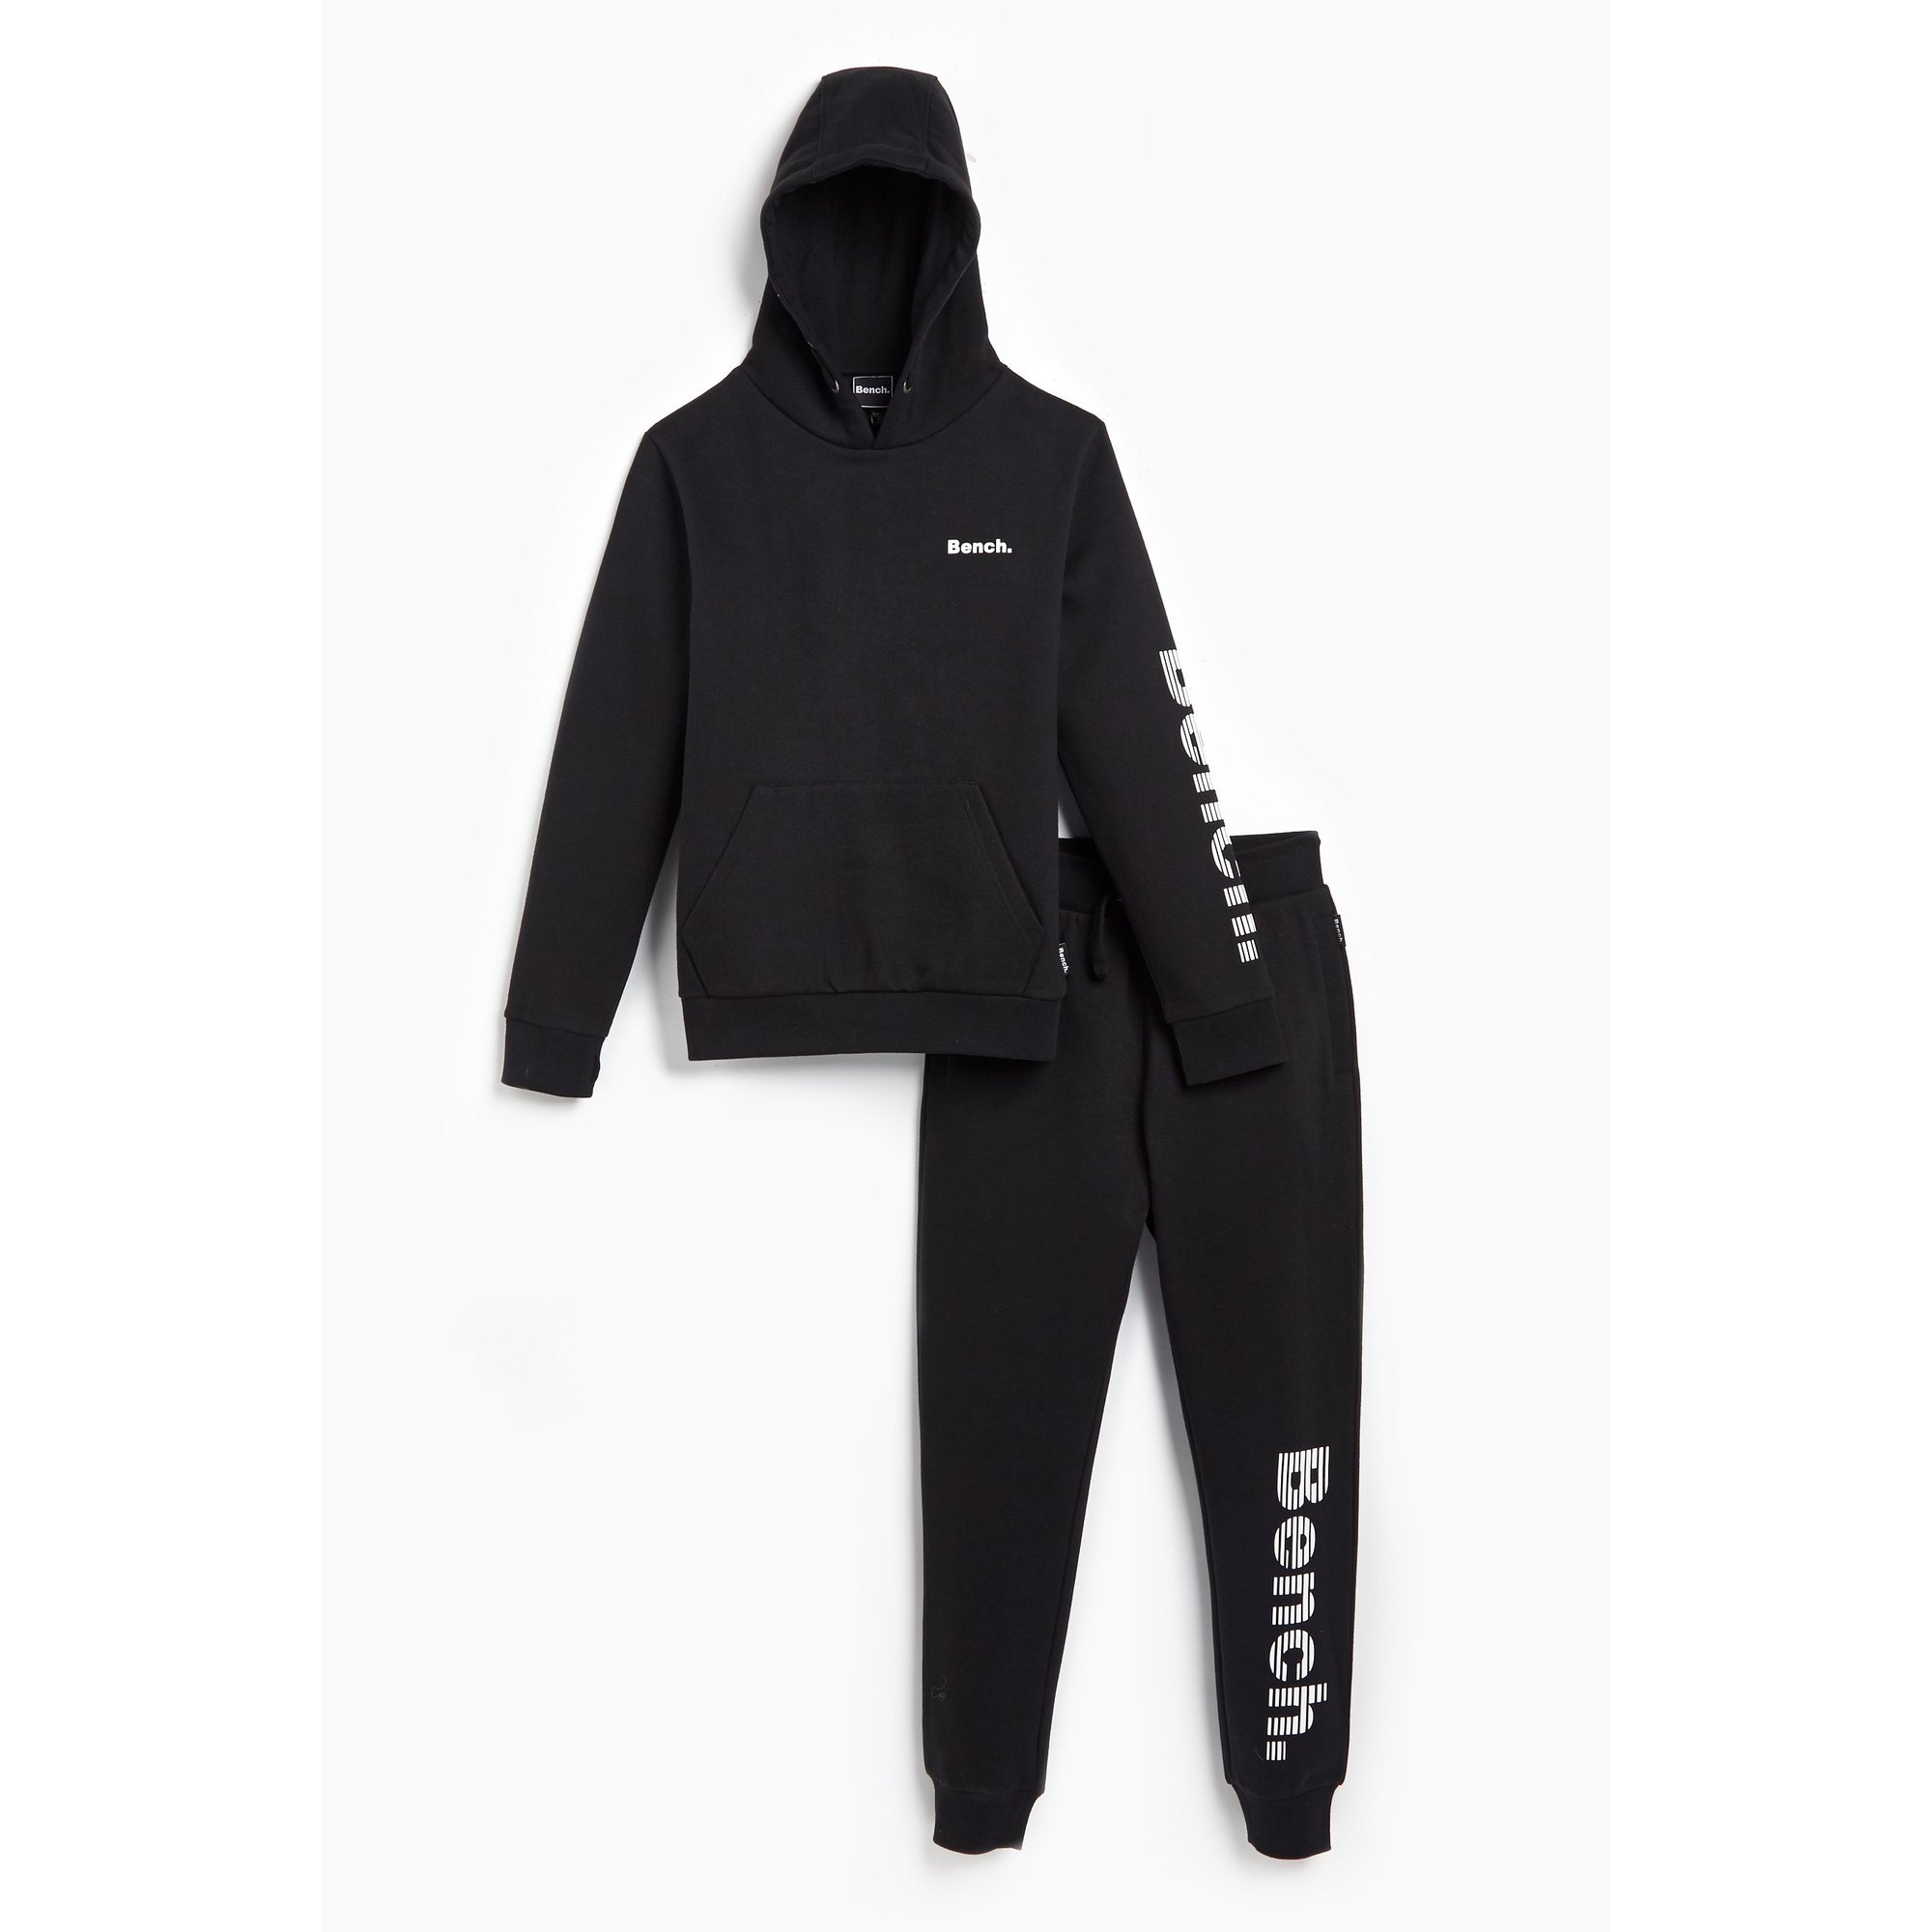 Image of Boys Bench Black Tracksuit